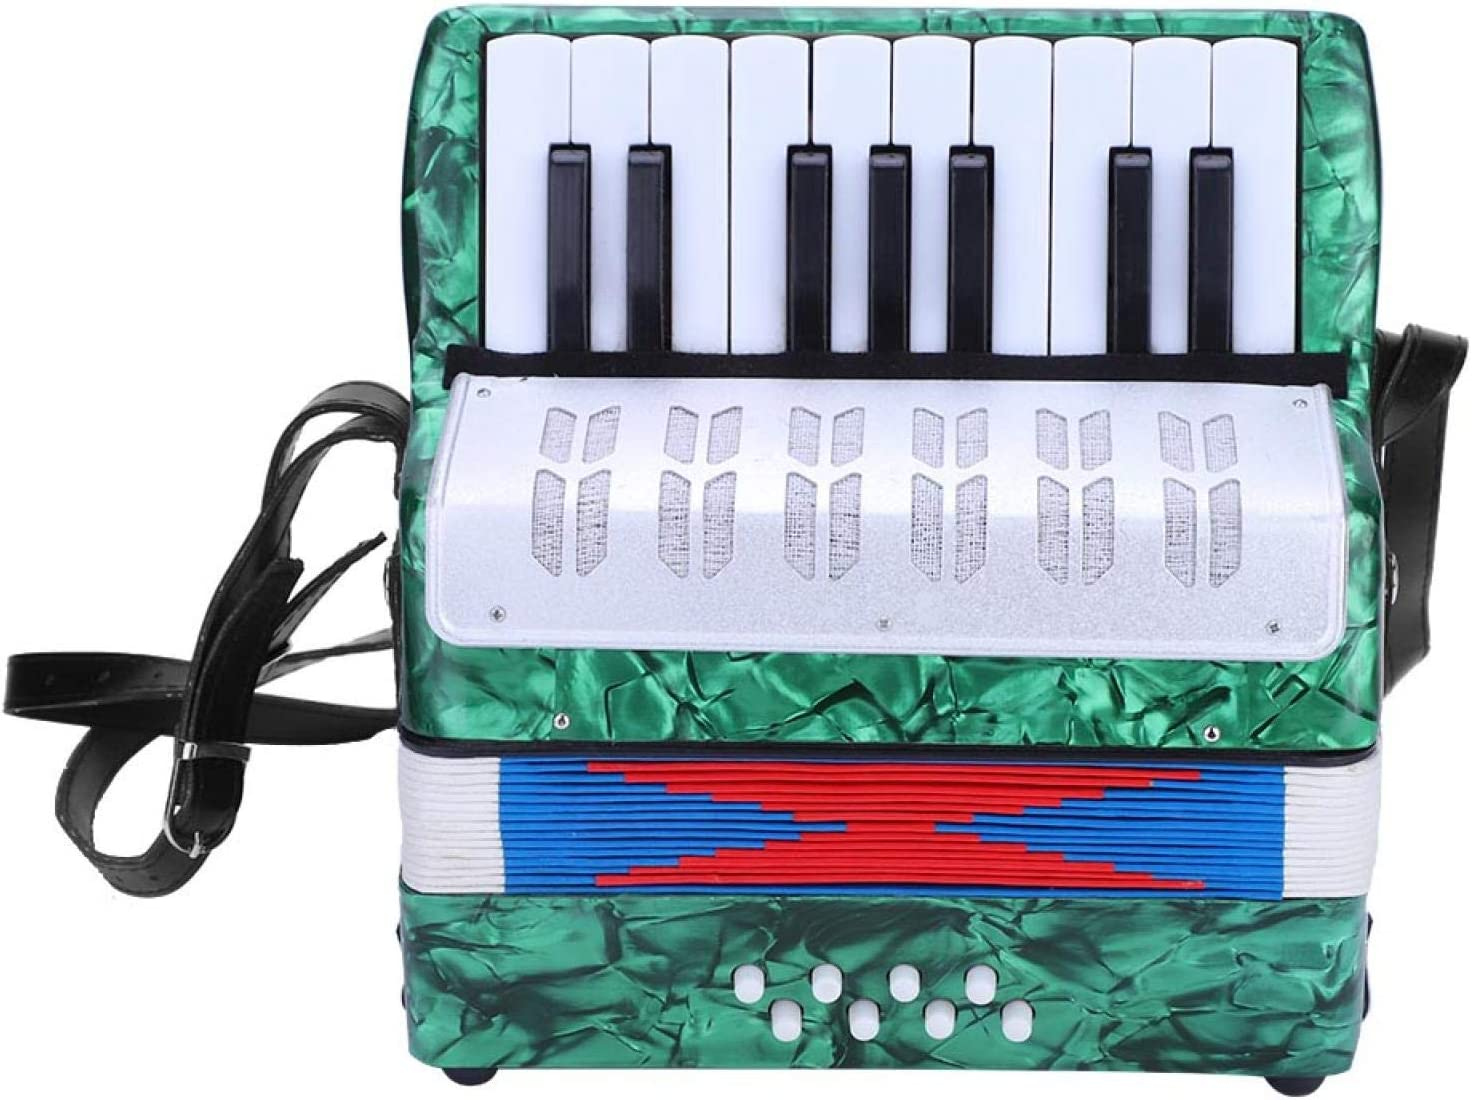 Beginner 70% OFF Outlet Accordion Over item handling ☆ 17 Key 8 Mini Accordio Piano Bass